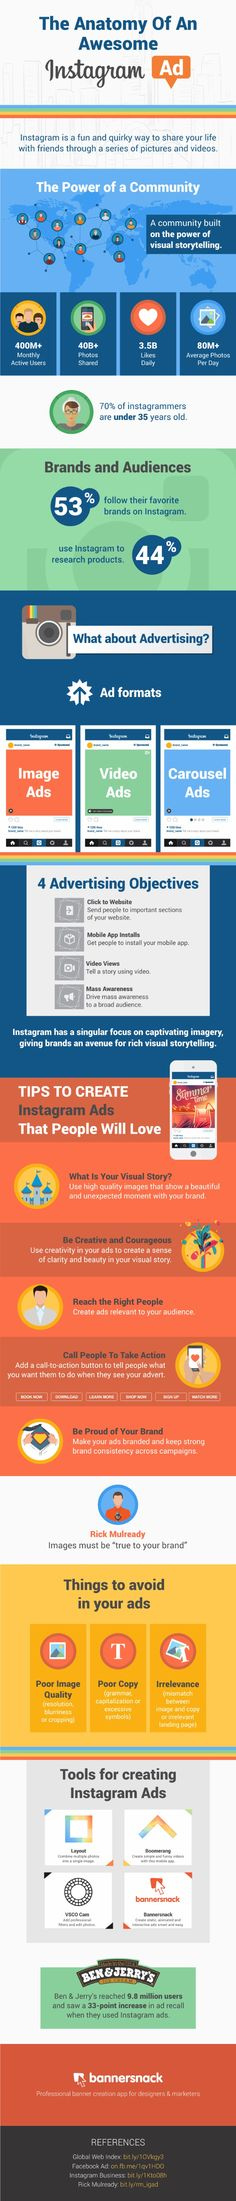 The Anatomy of an Awesome Instagram Ad.